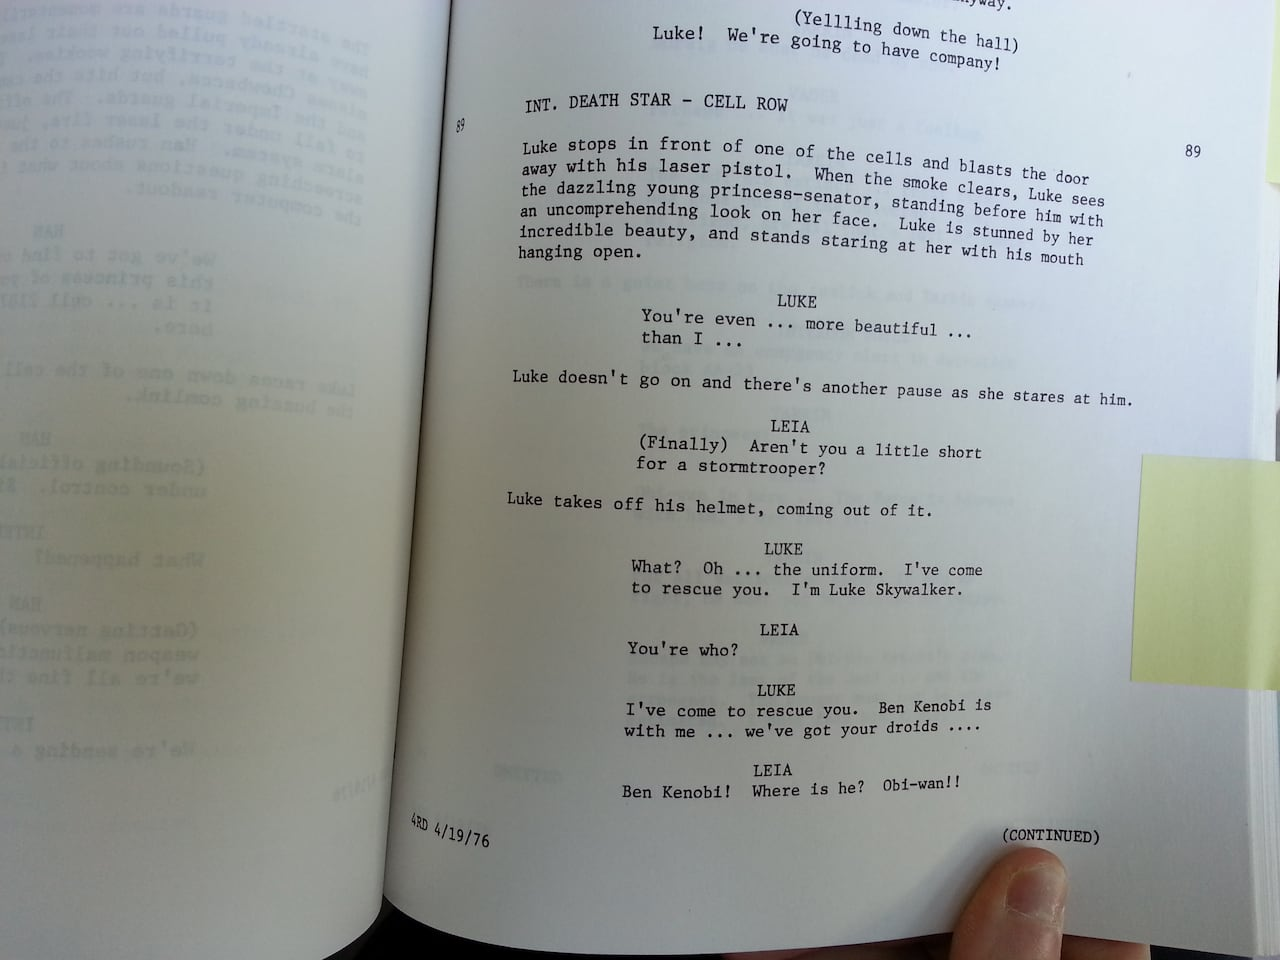 Copy Of Original Star Wars Script Discovered In Unb Library Cbc News